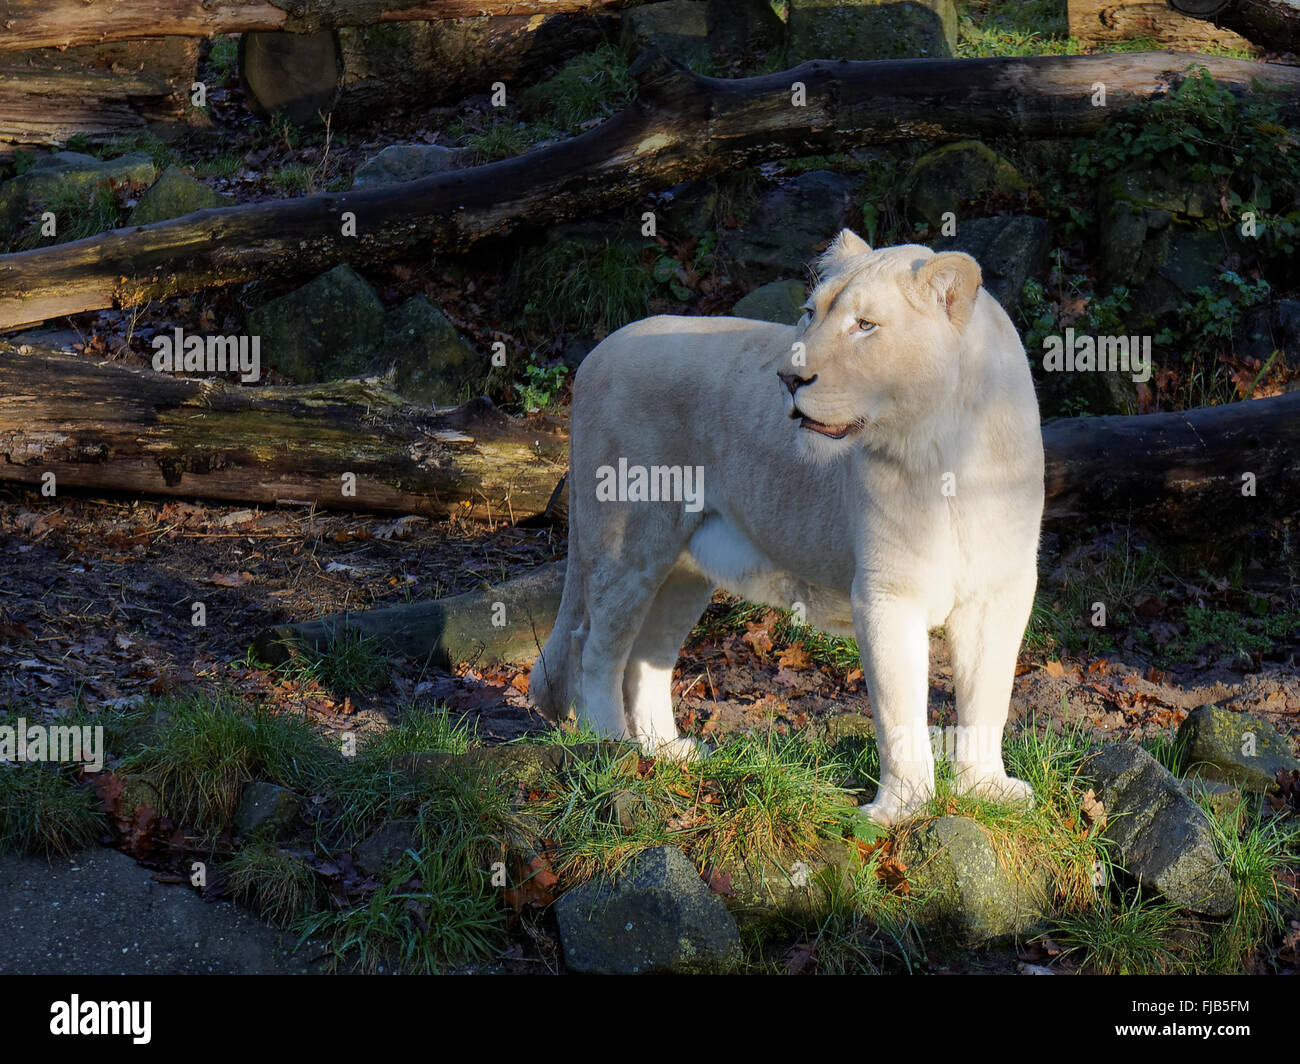 White lion standing in the sun - Stock Image